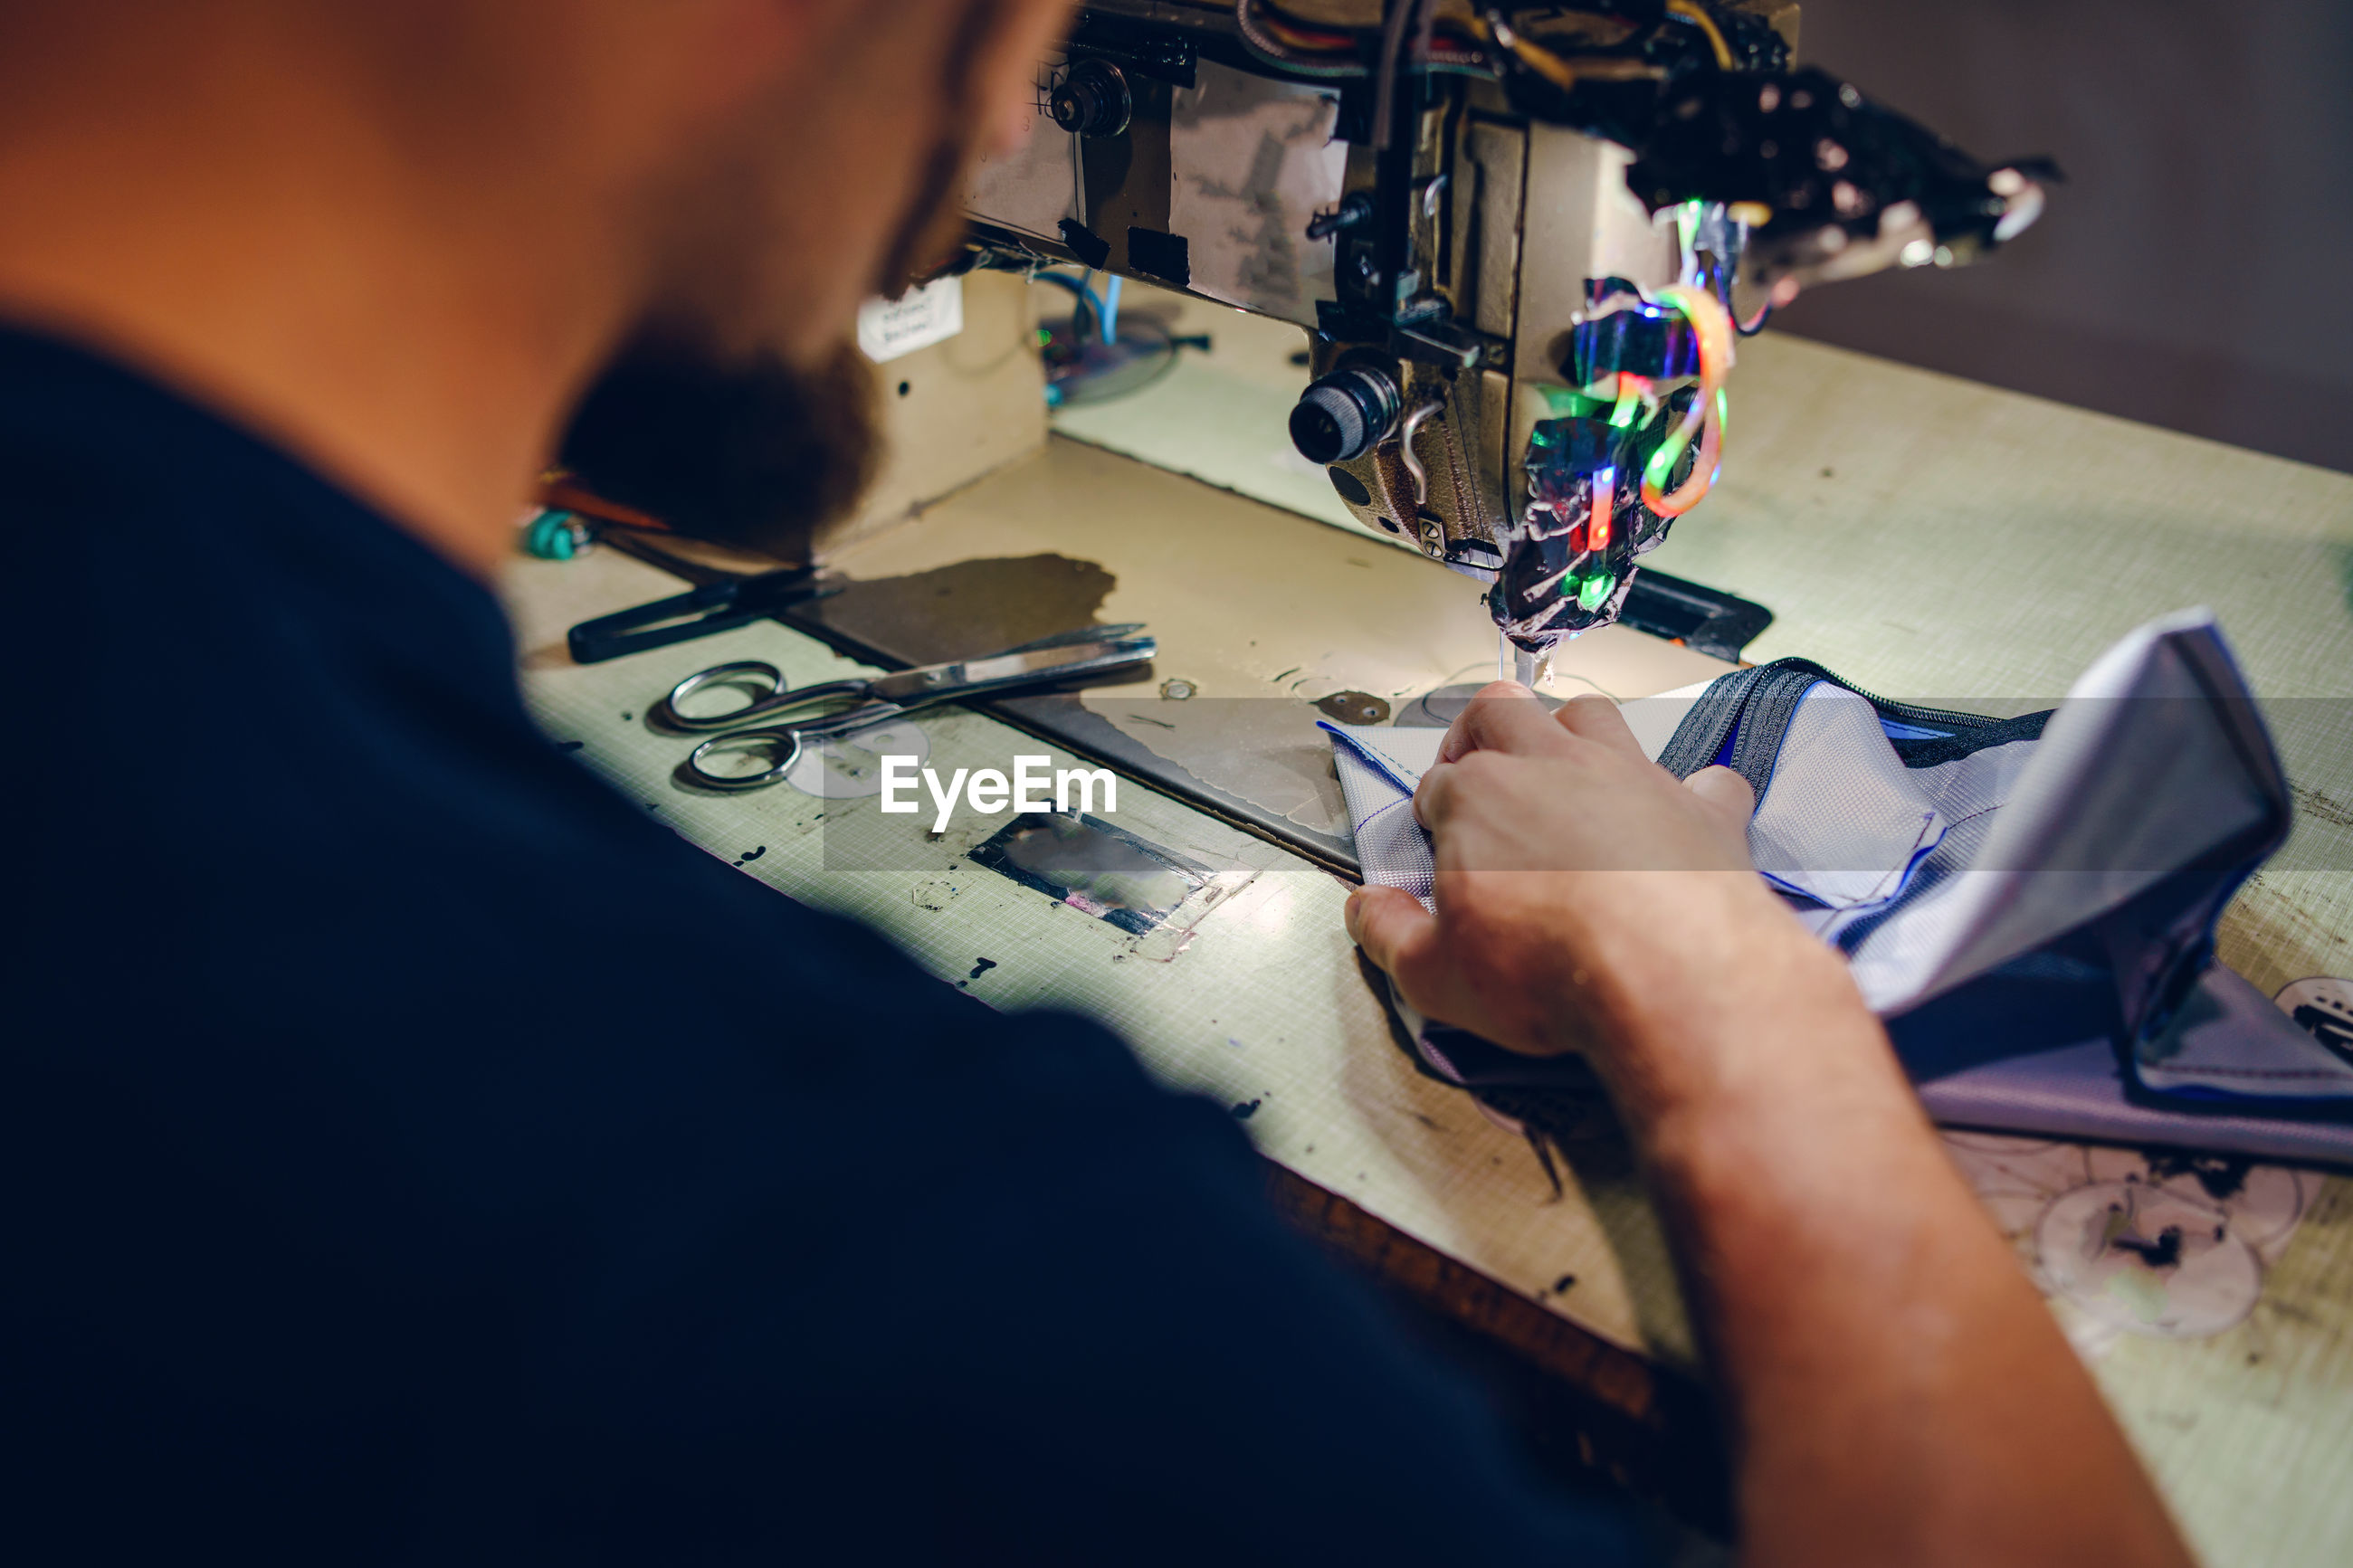 High angle view of man working on sewing machine